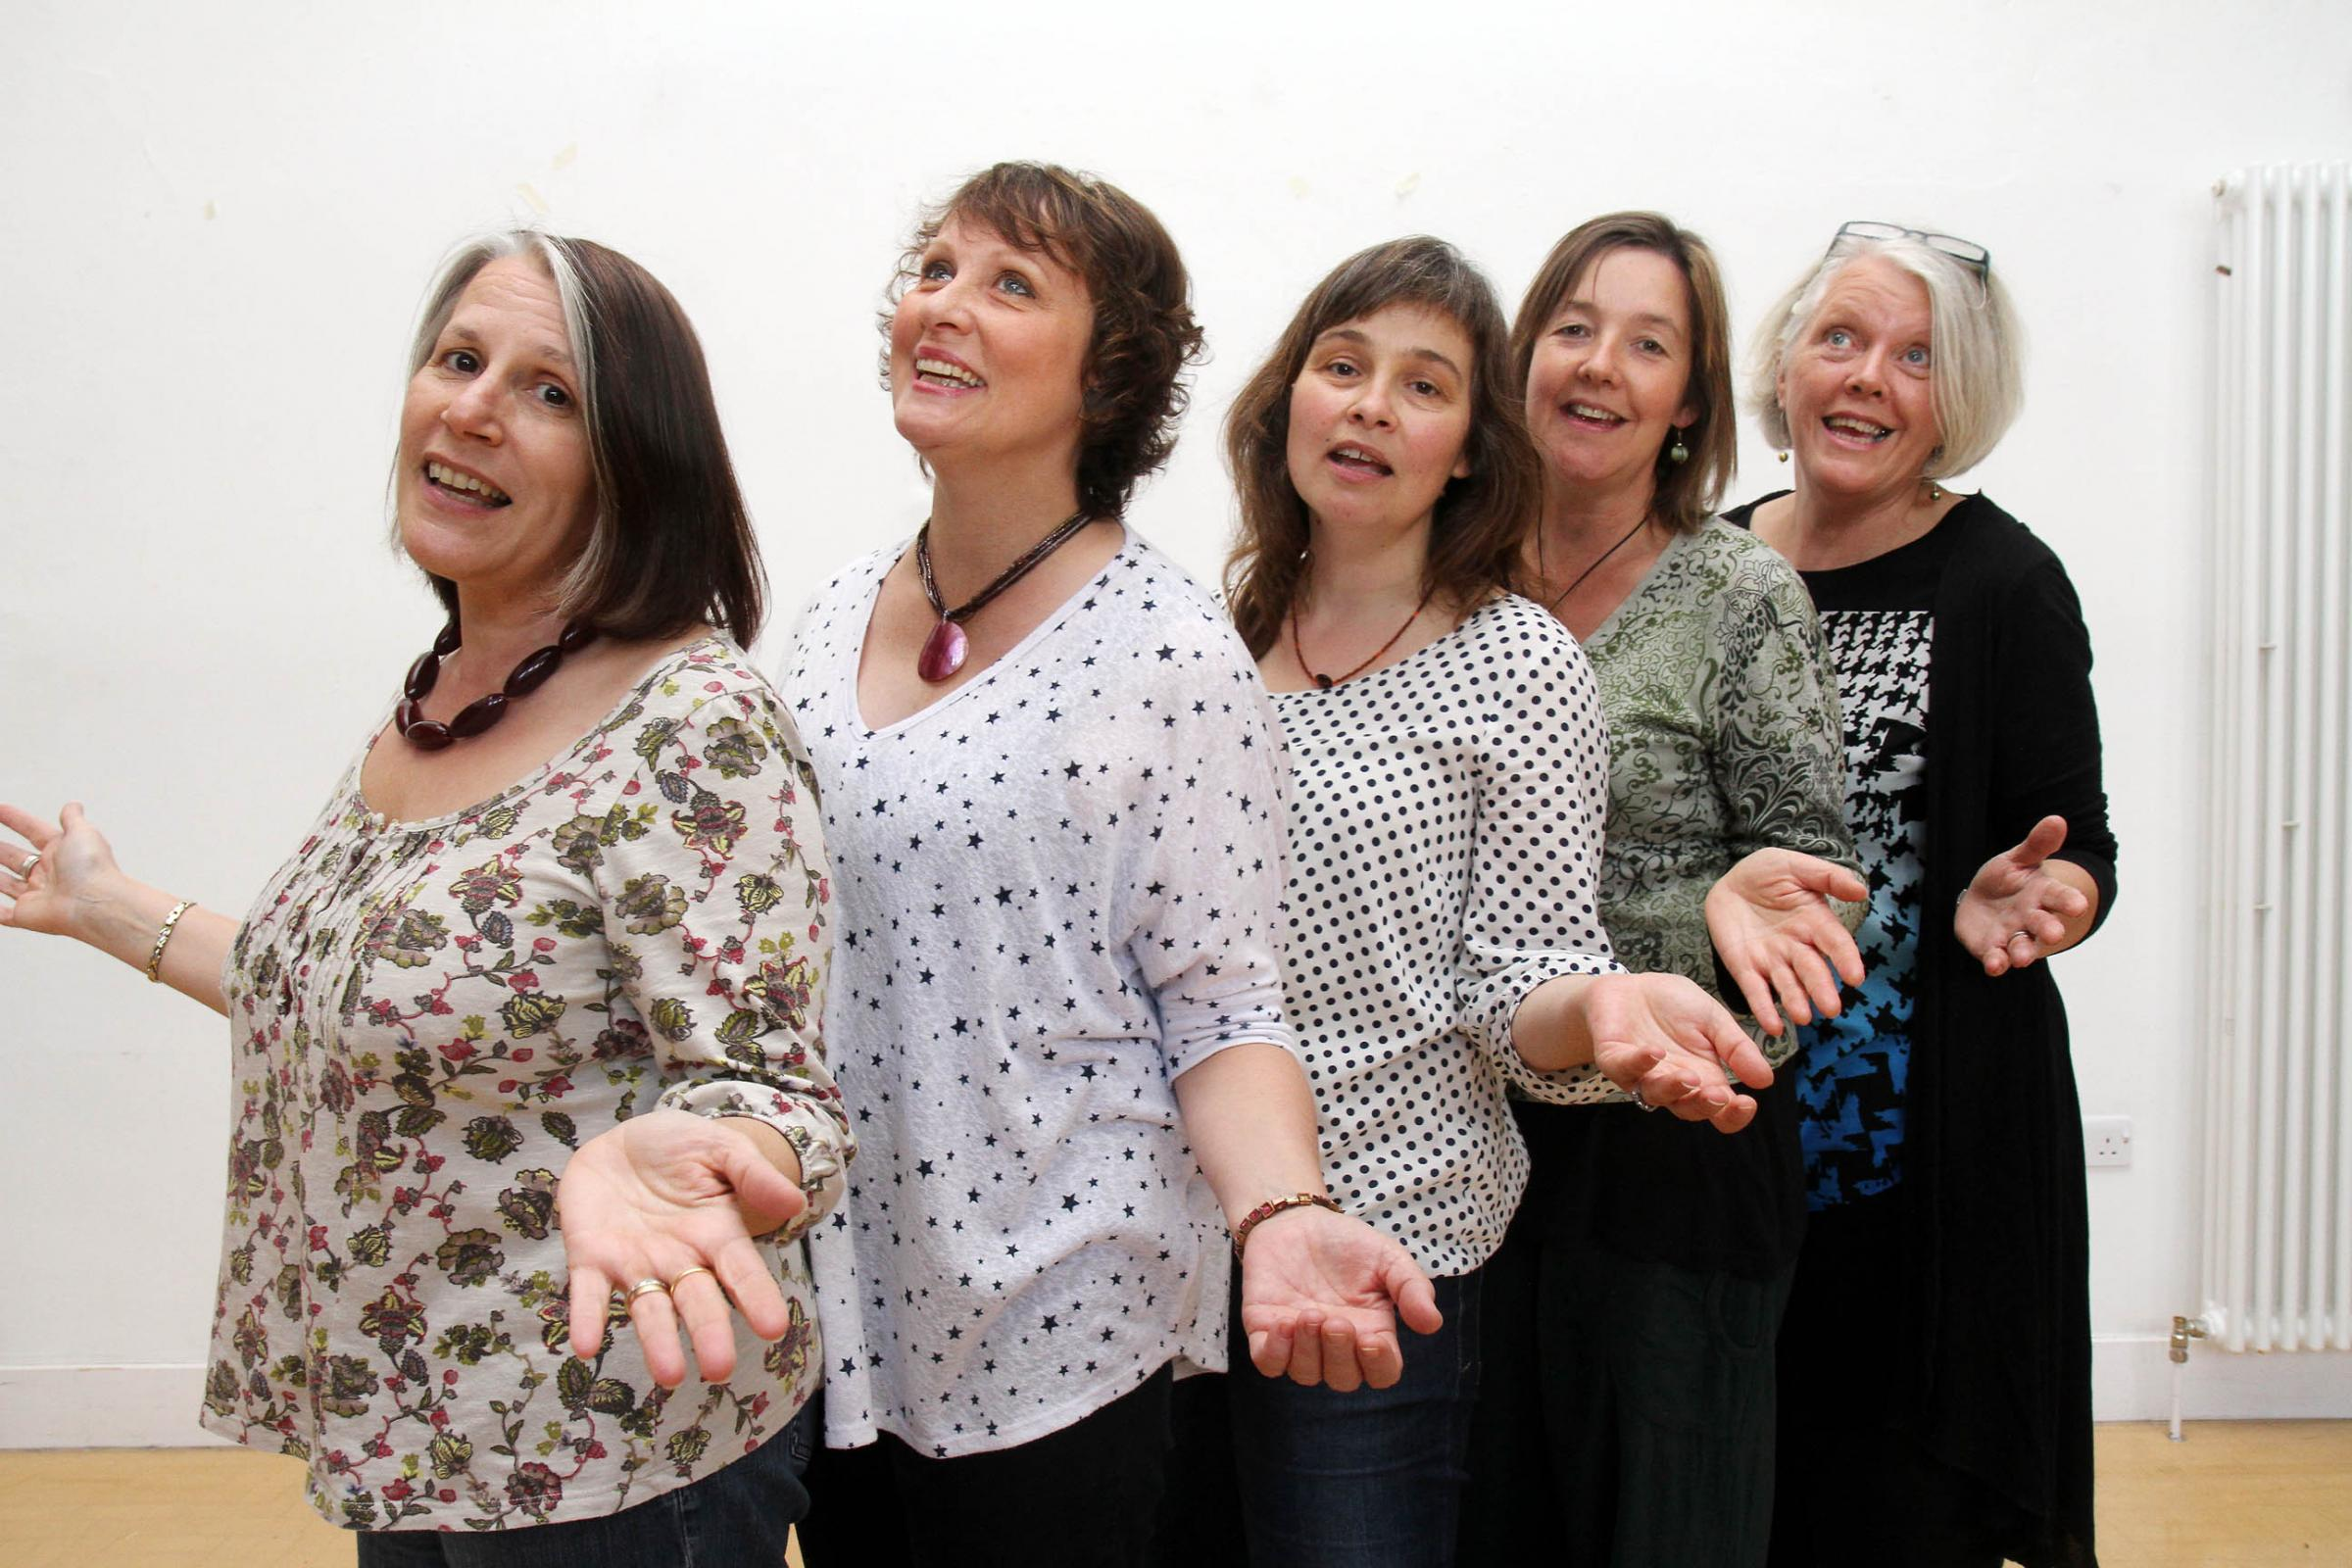 Members of the Shared Harmonies singing group (from left) Lynne Burns, Frances Spencer, Becky Mears, Jo Horrox and Beryl Horrocks